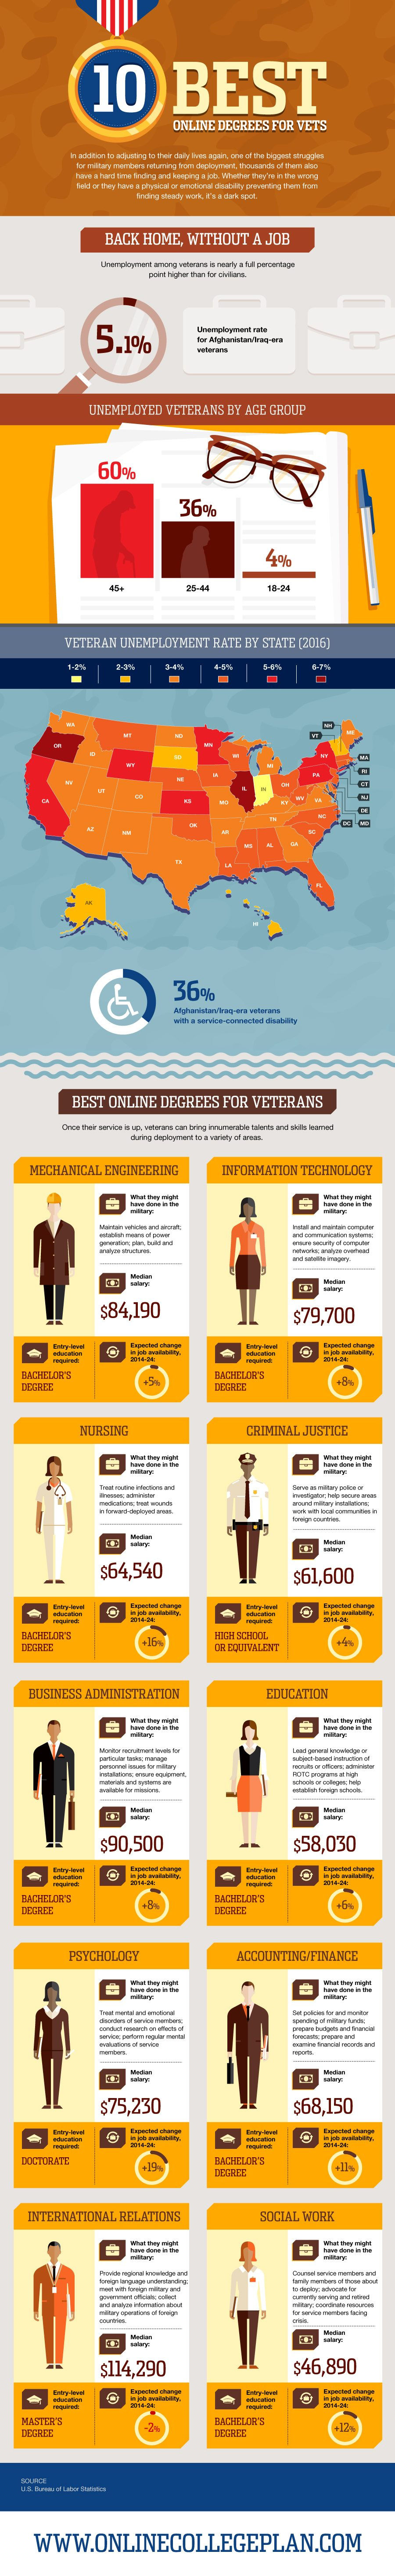 Degrees for Vets